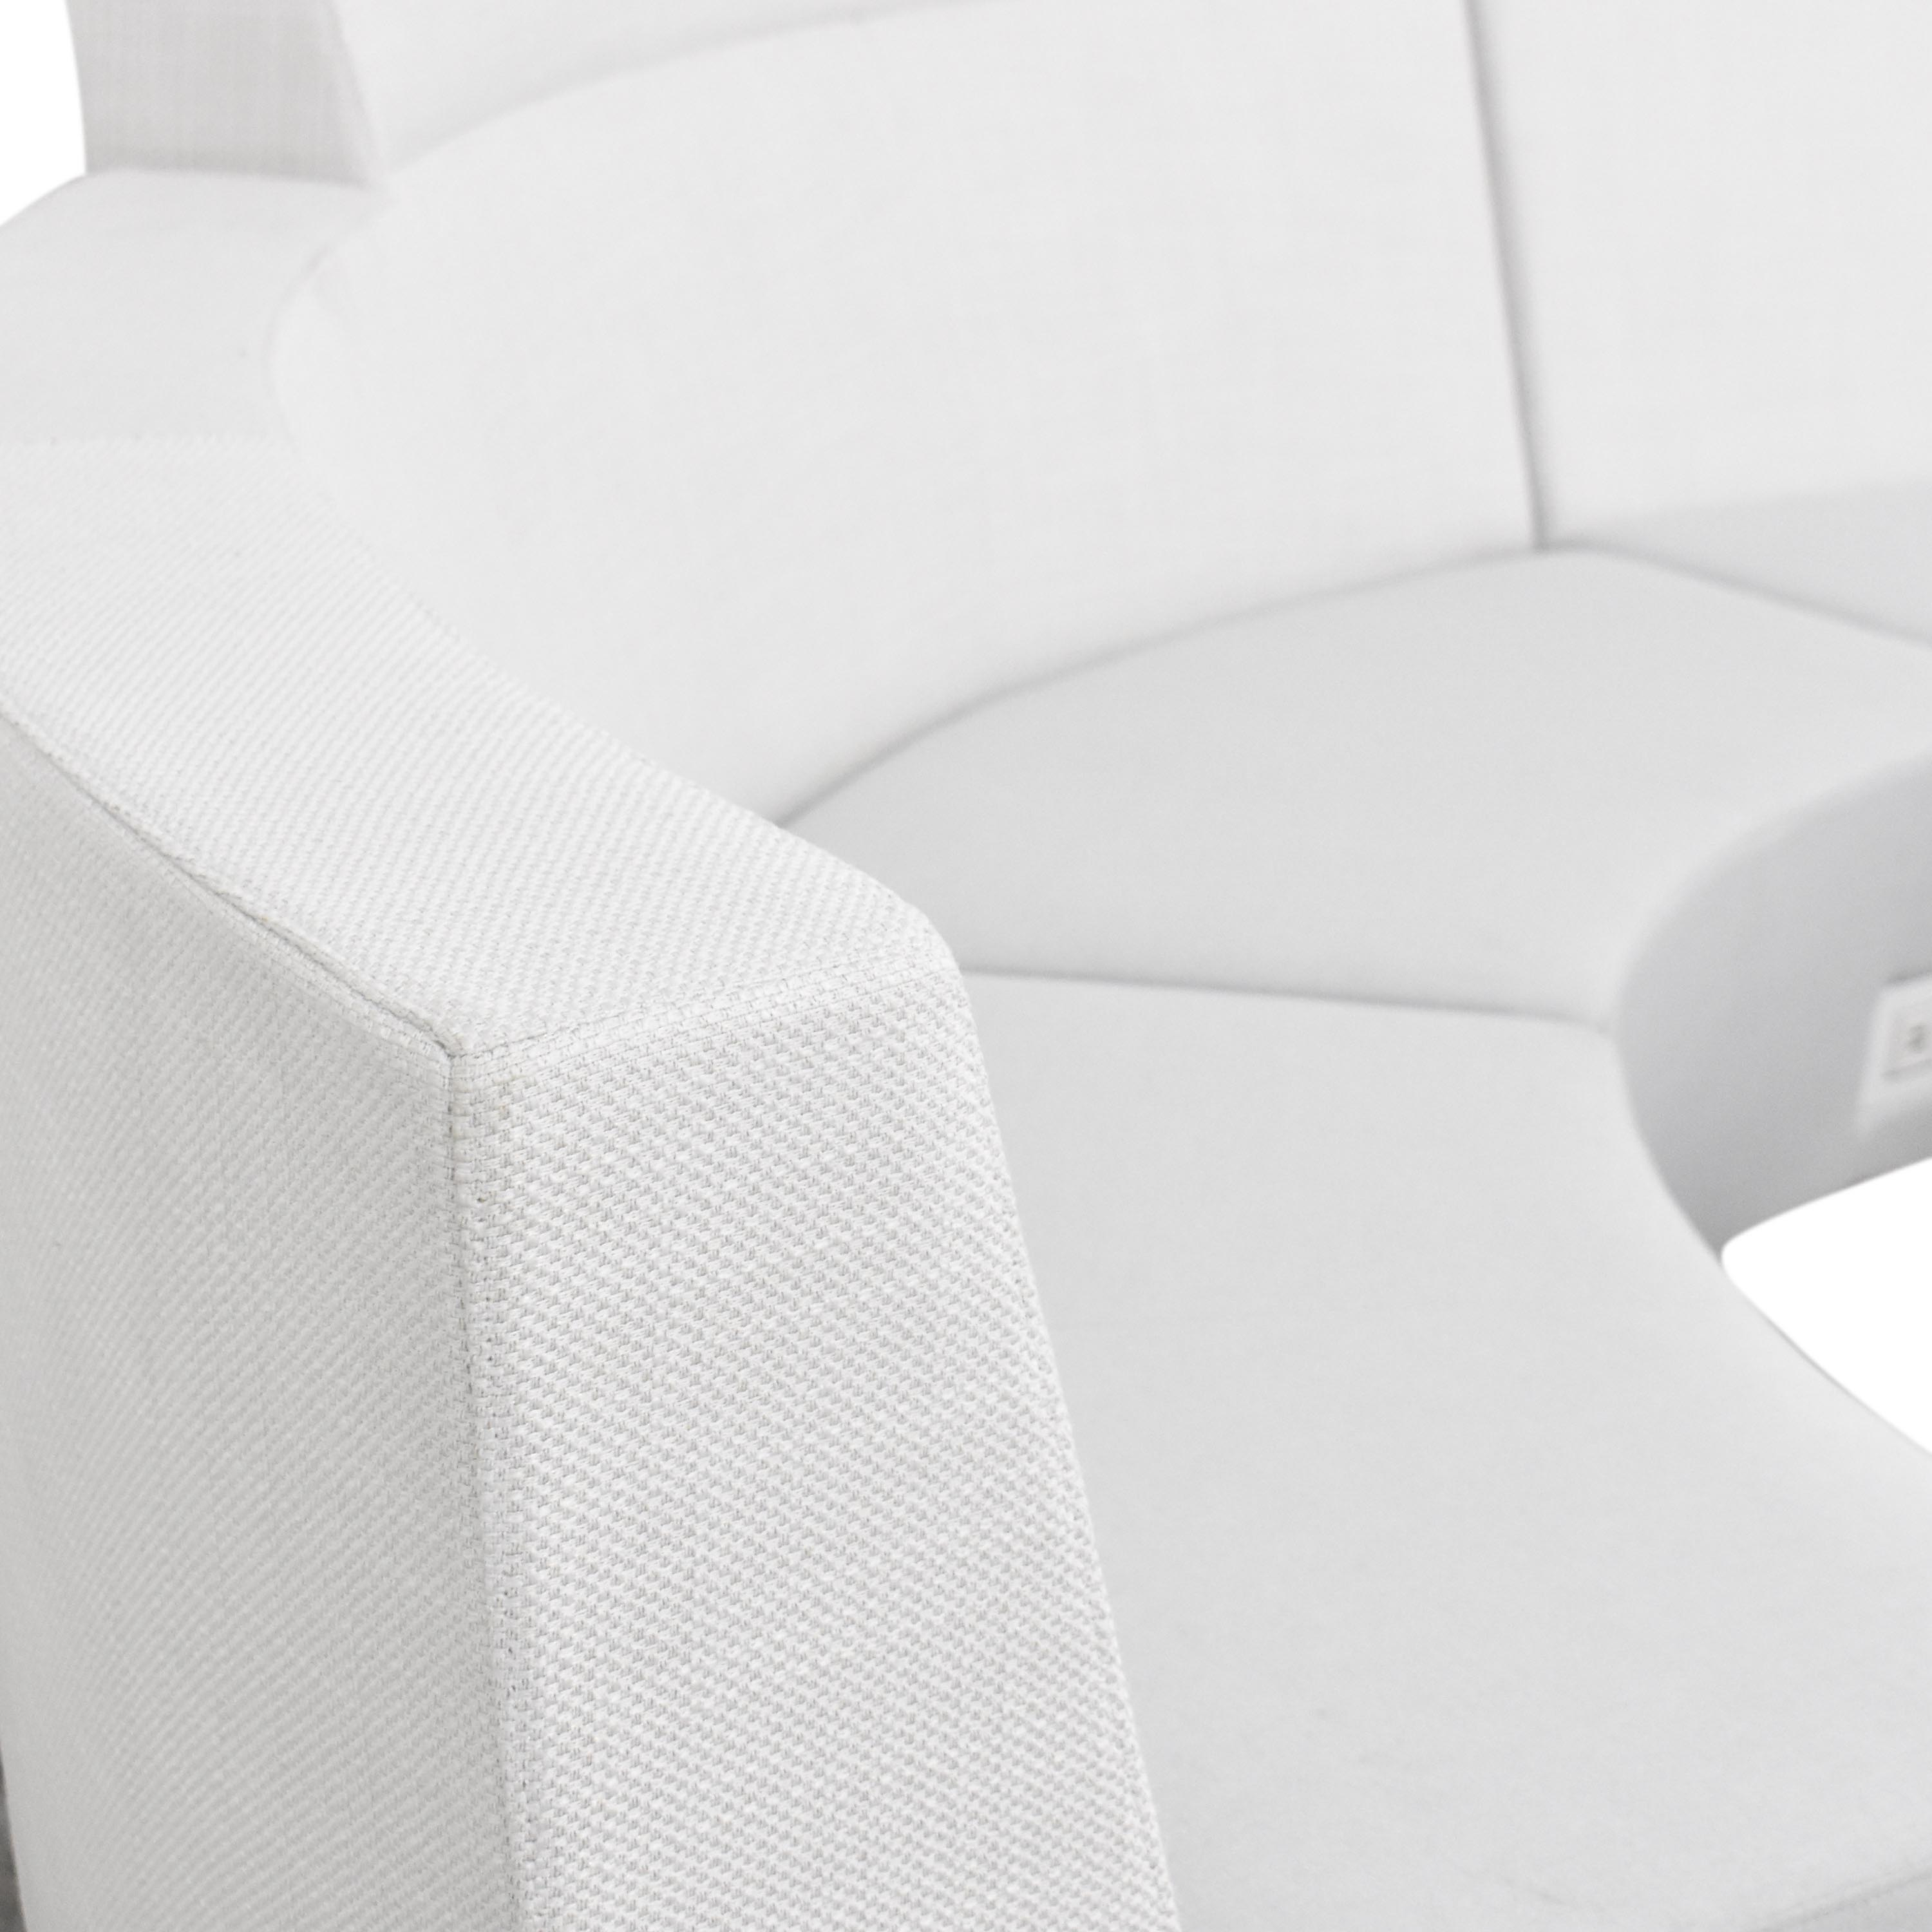 Global Furniture Group Global Furniture Group River Sectional Sofa with Coffee Table Section Sofas